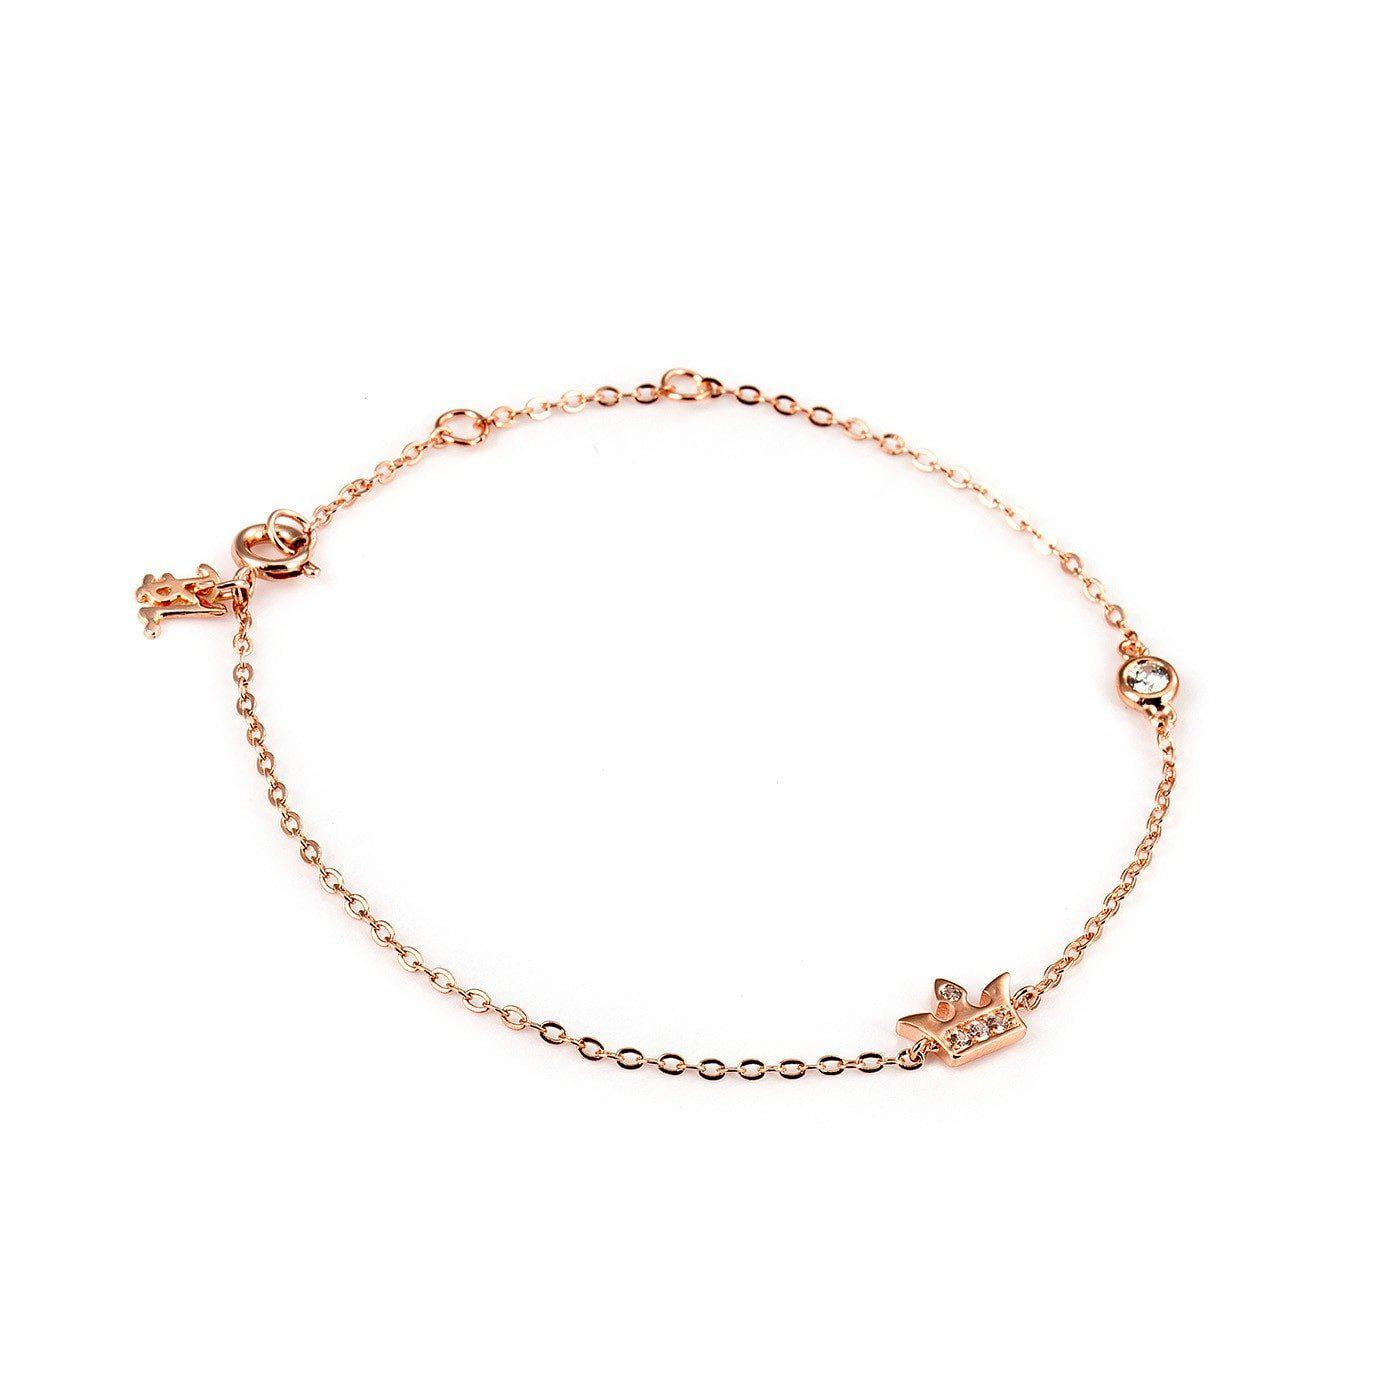 Princess Me Elite Bracelet-Blinglane